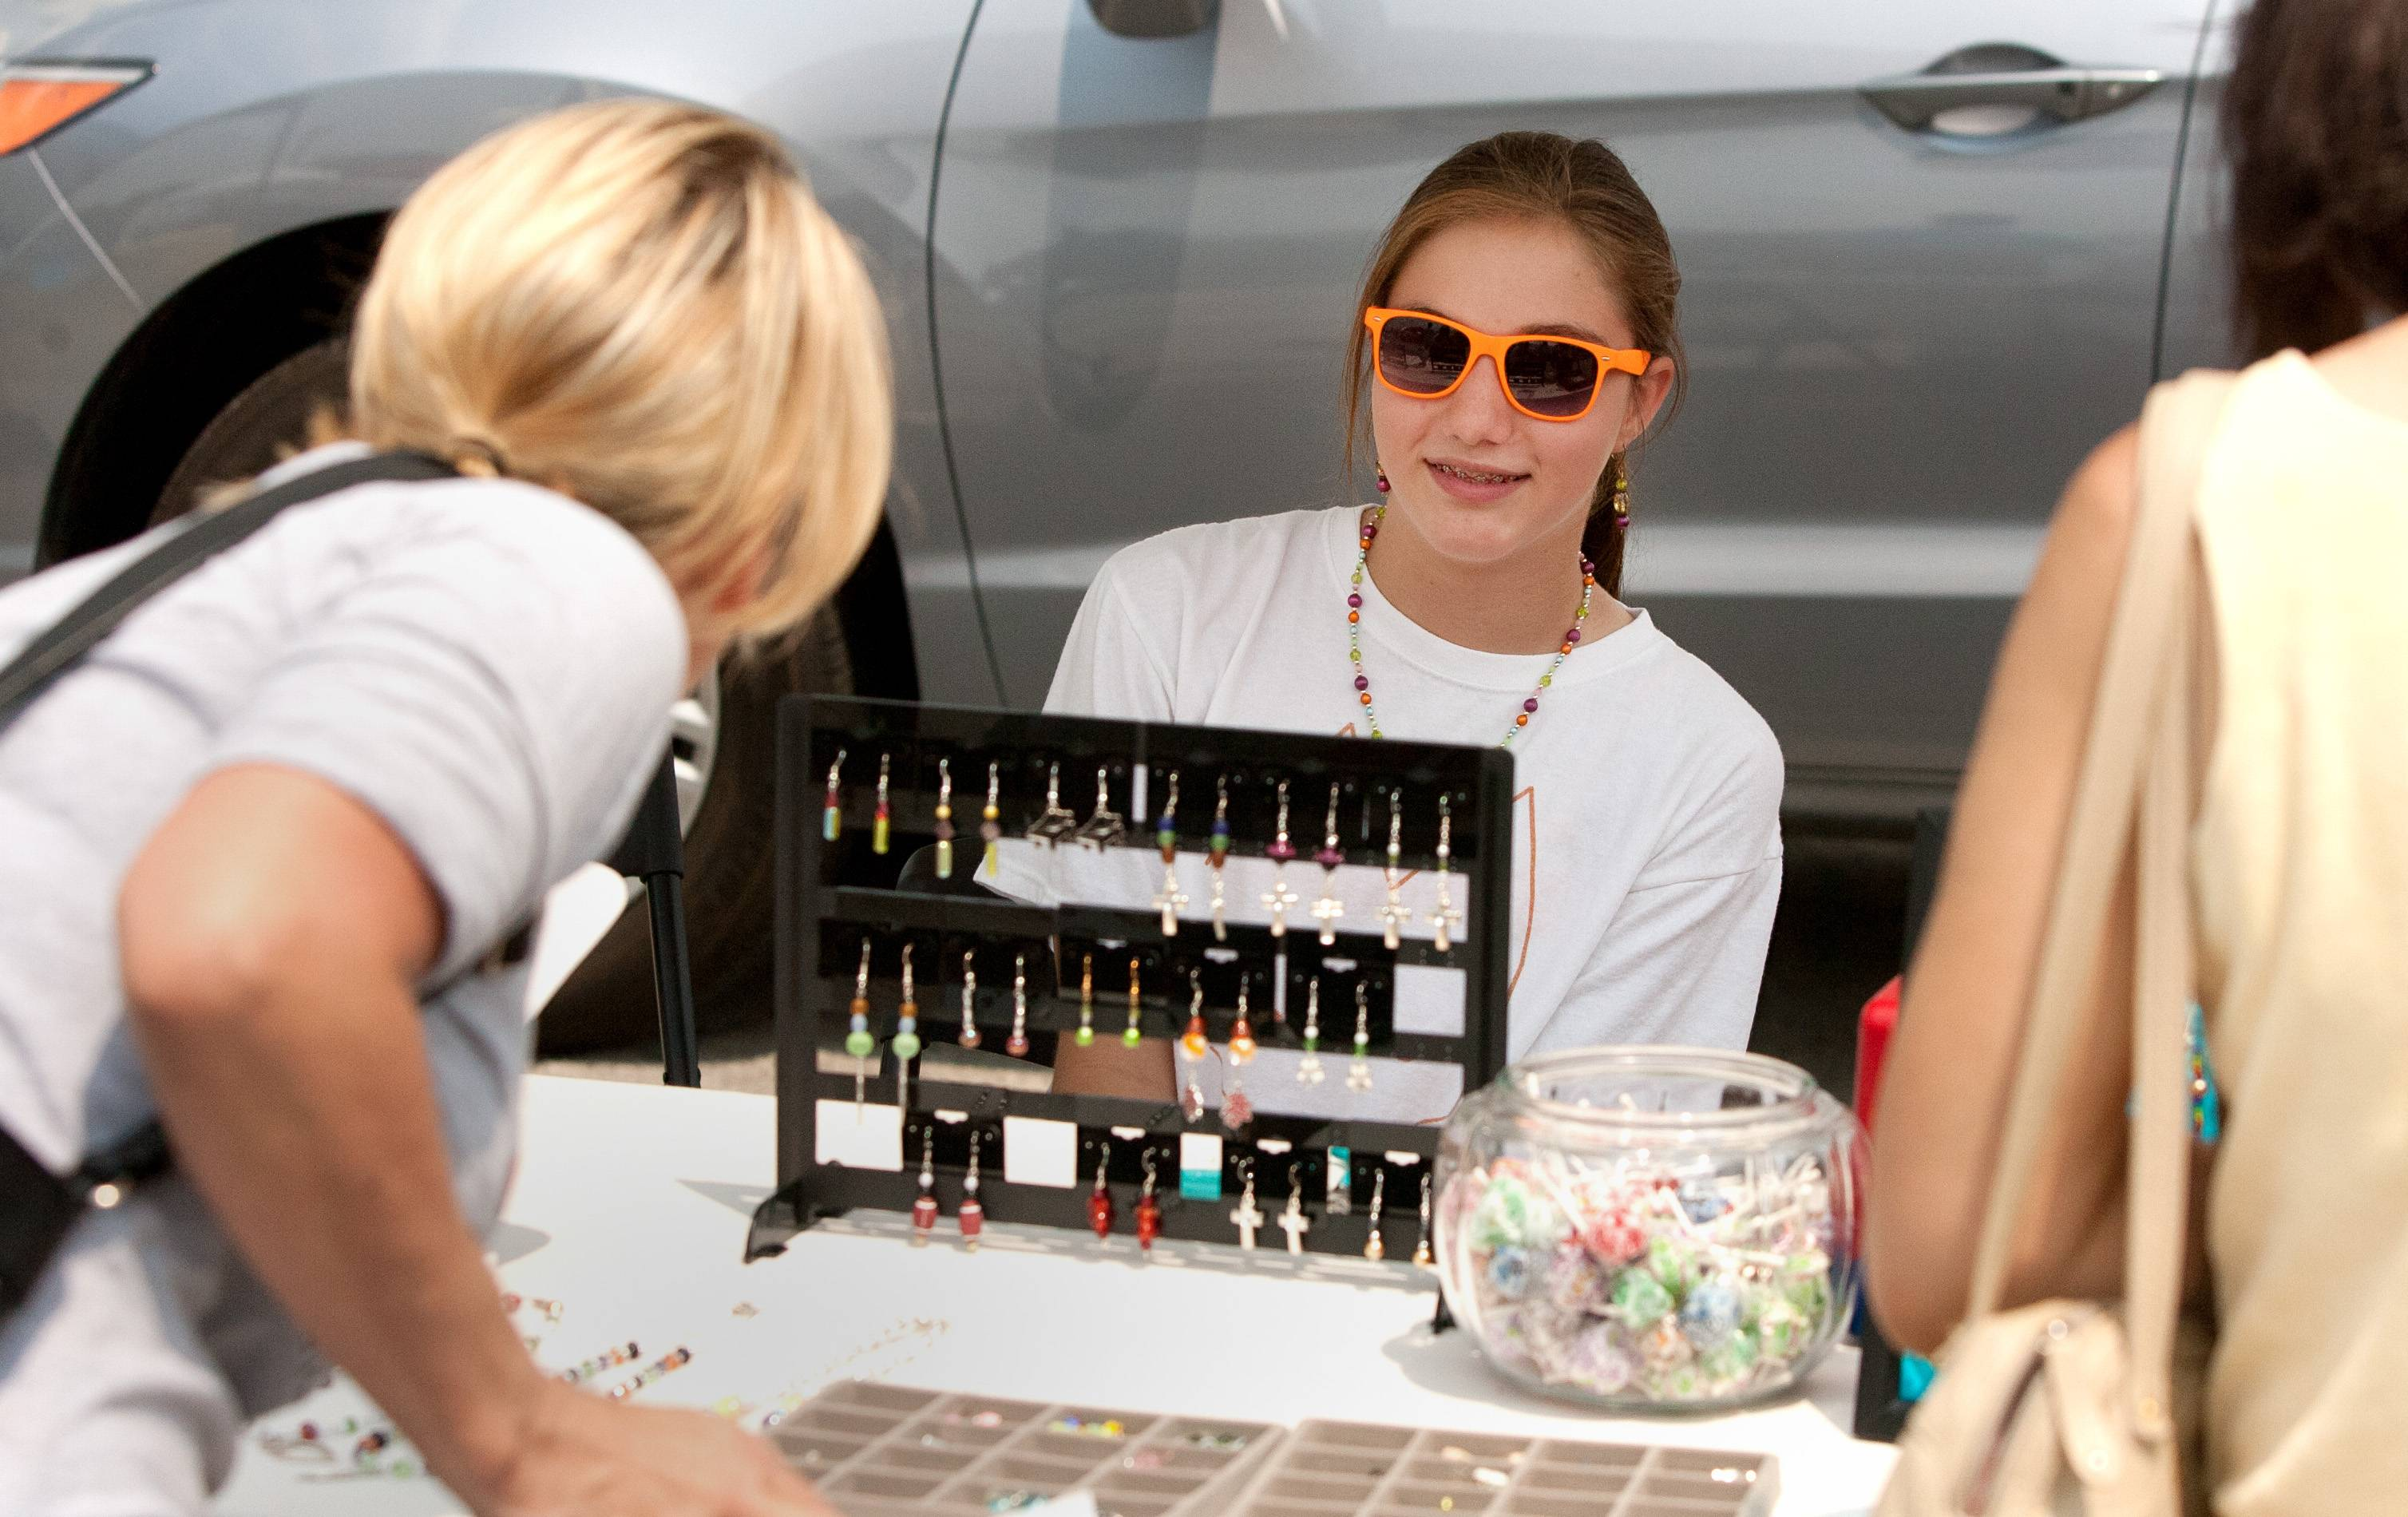 Customers talk with April Kochman about the jewelry she has on display at the Aurora Downtown Farmers Market.